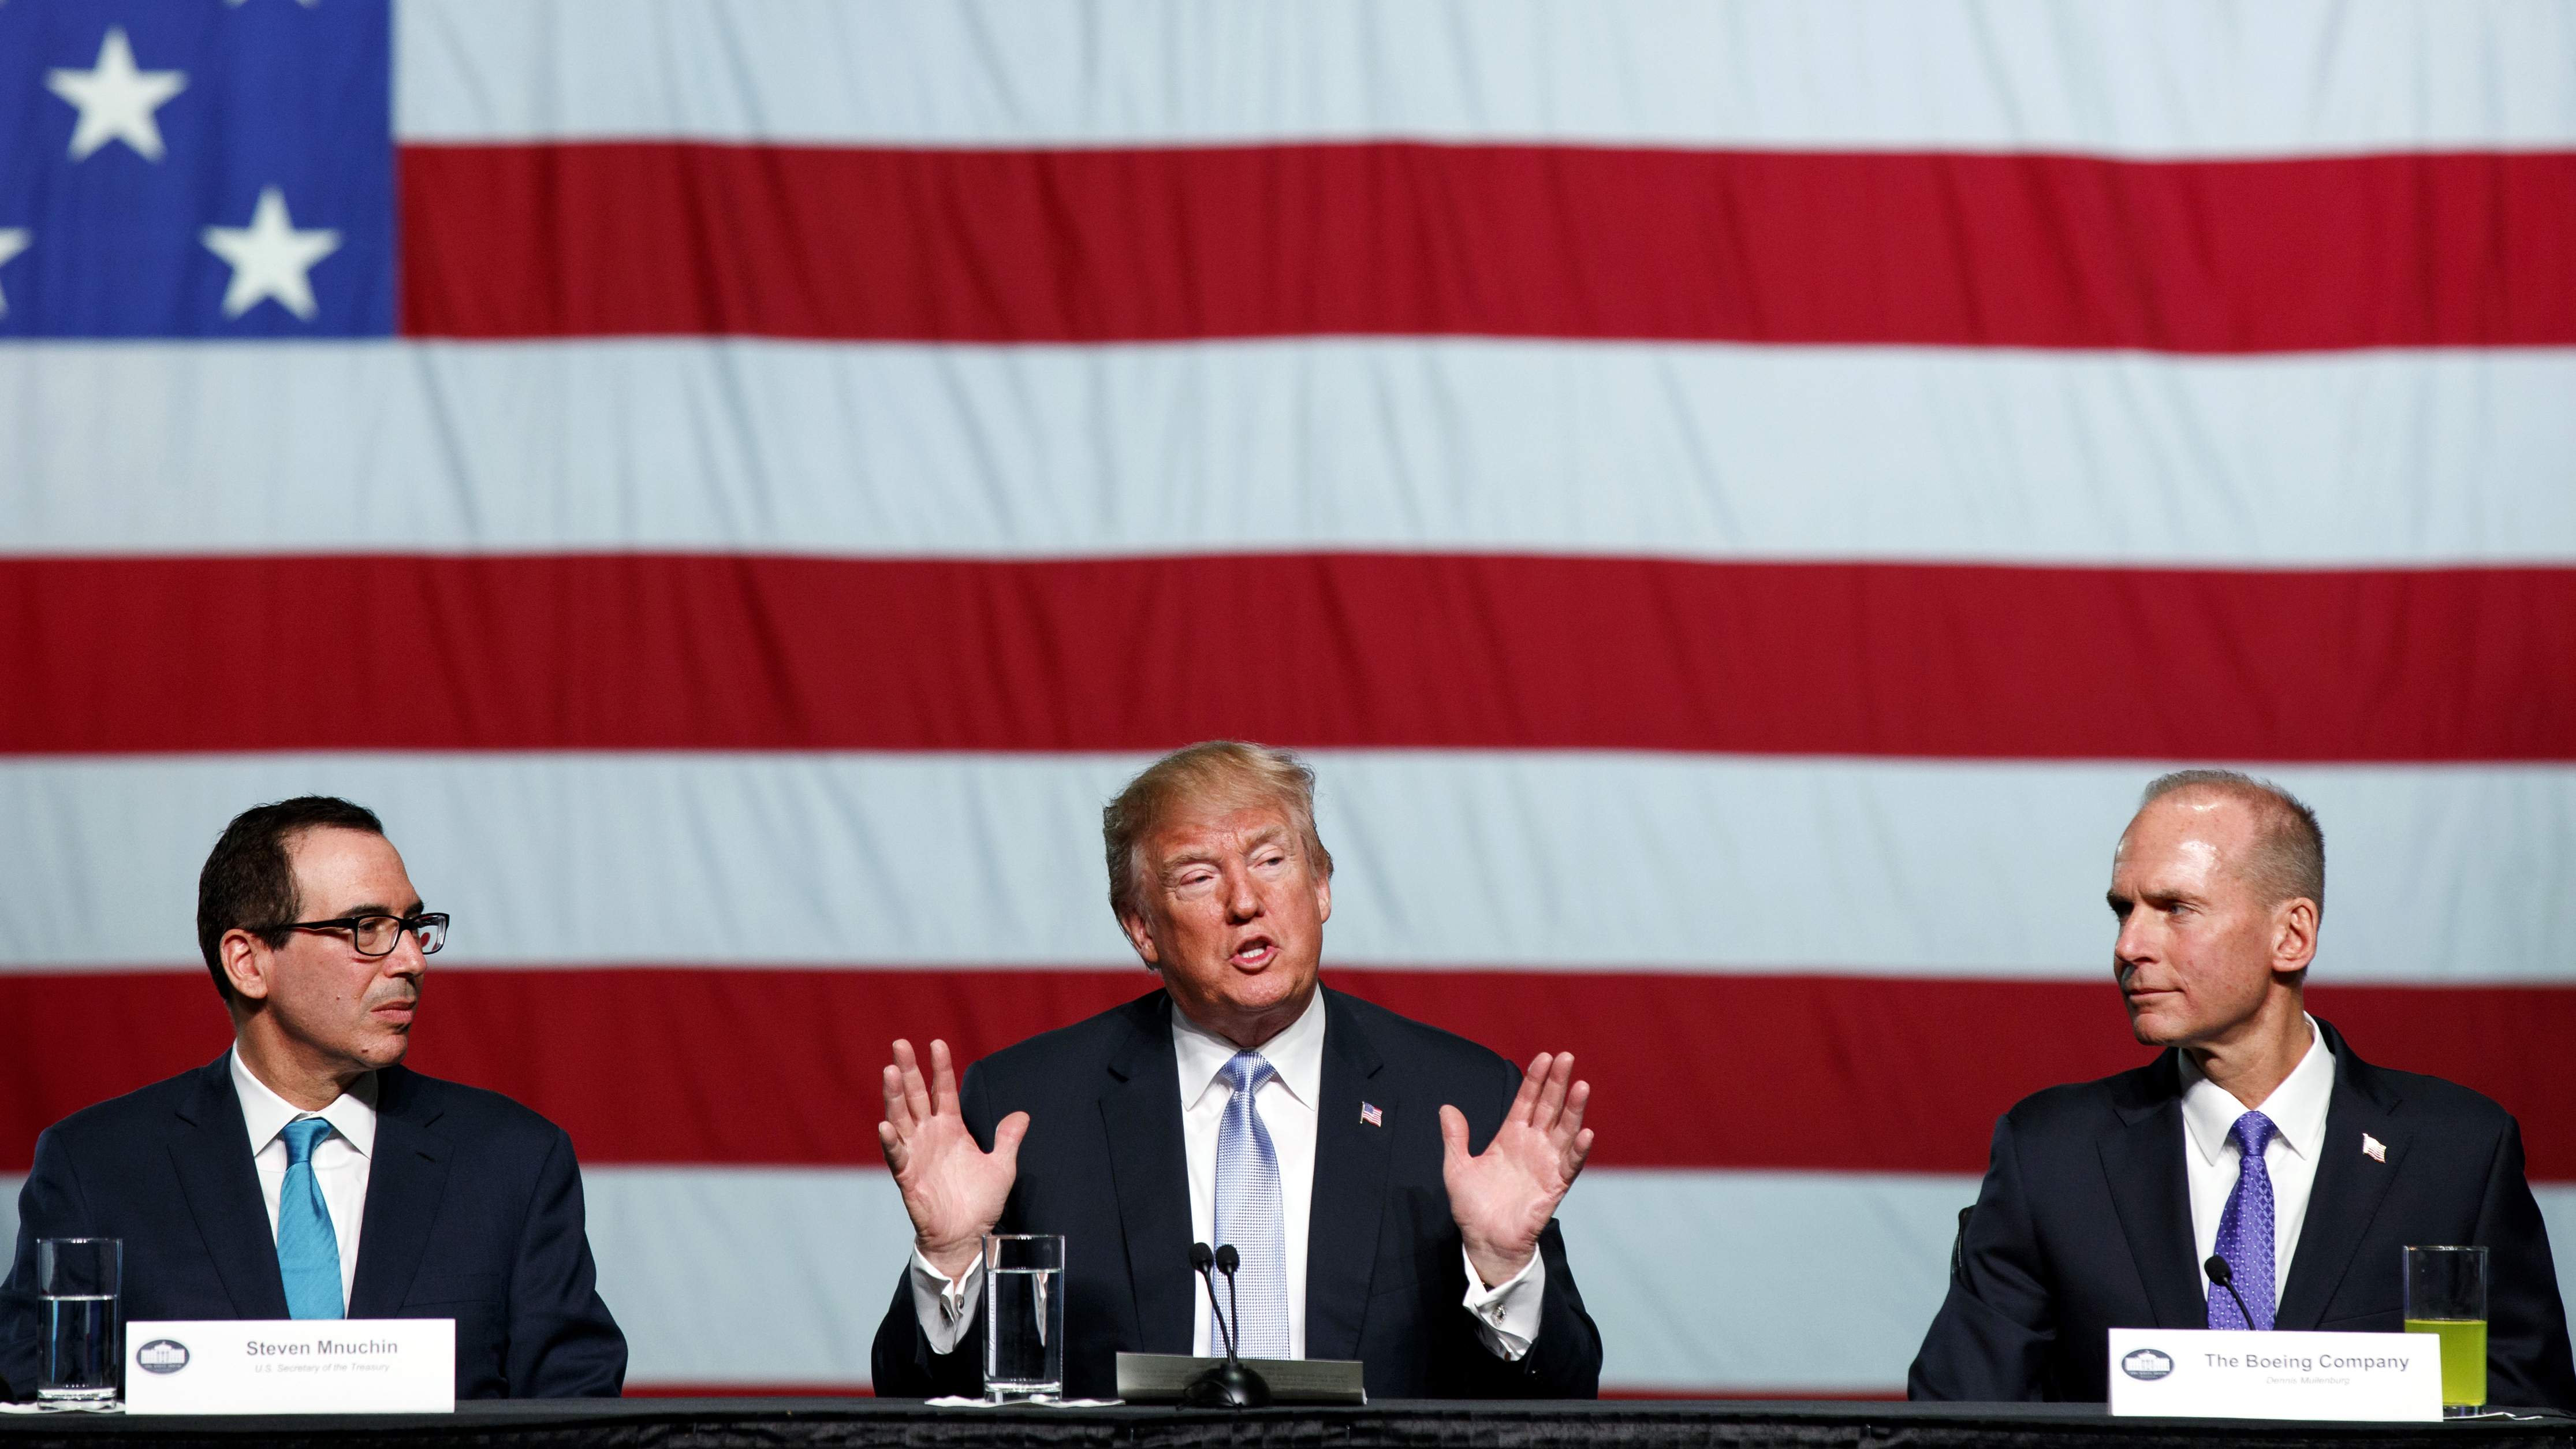 Treasury Secretary Steve Mnuchin, left, and Boeing CEO Dennis Muilenburg, right, listens as President Donald Trump speaks during a roundtable discussion on tax policy at the Boeing Company, Wednesday, March 14, 2018, in St. Louis.